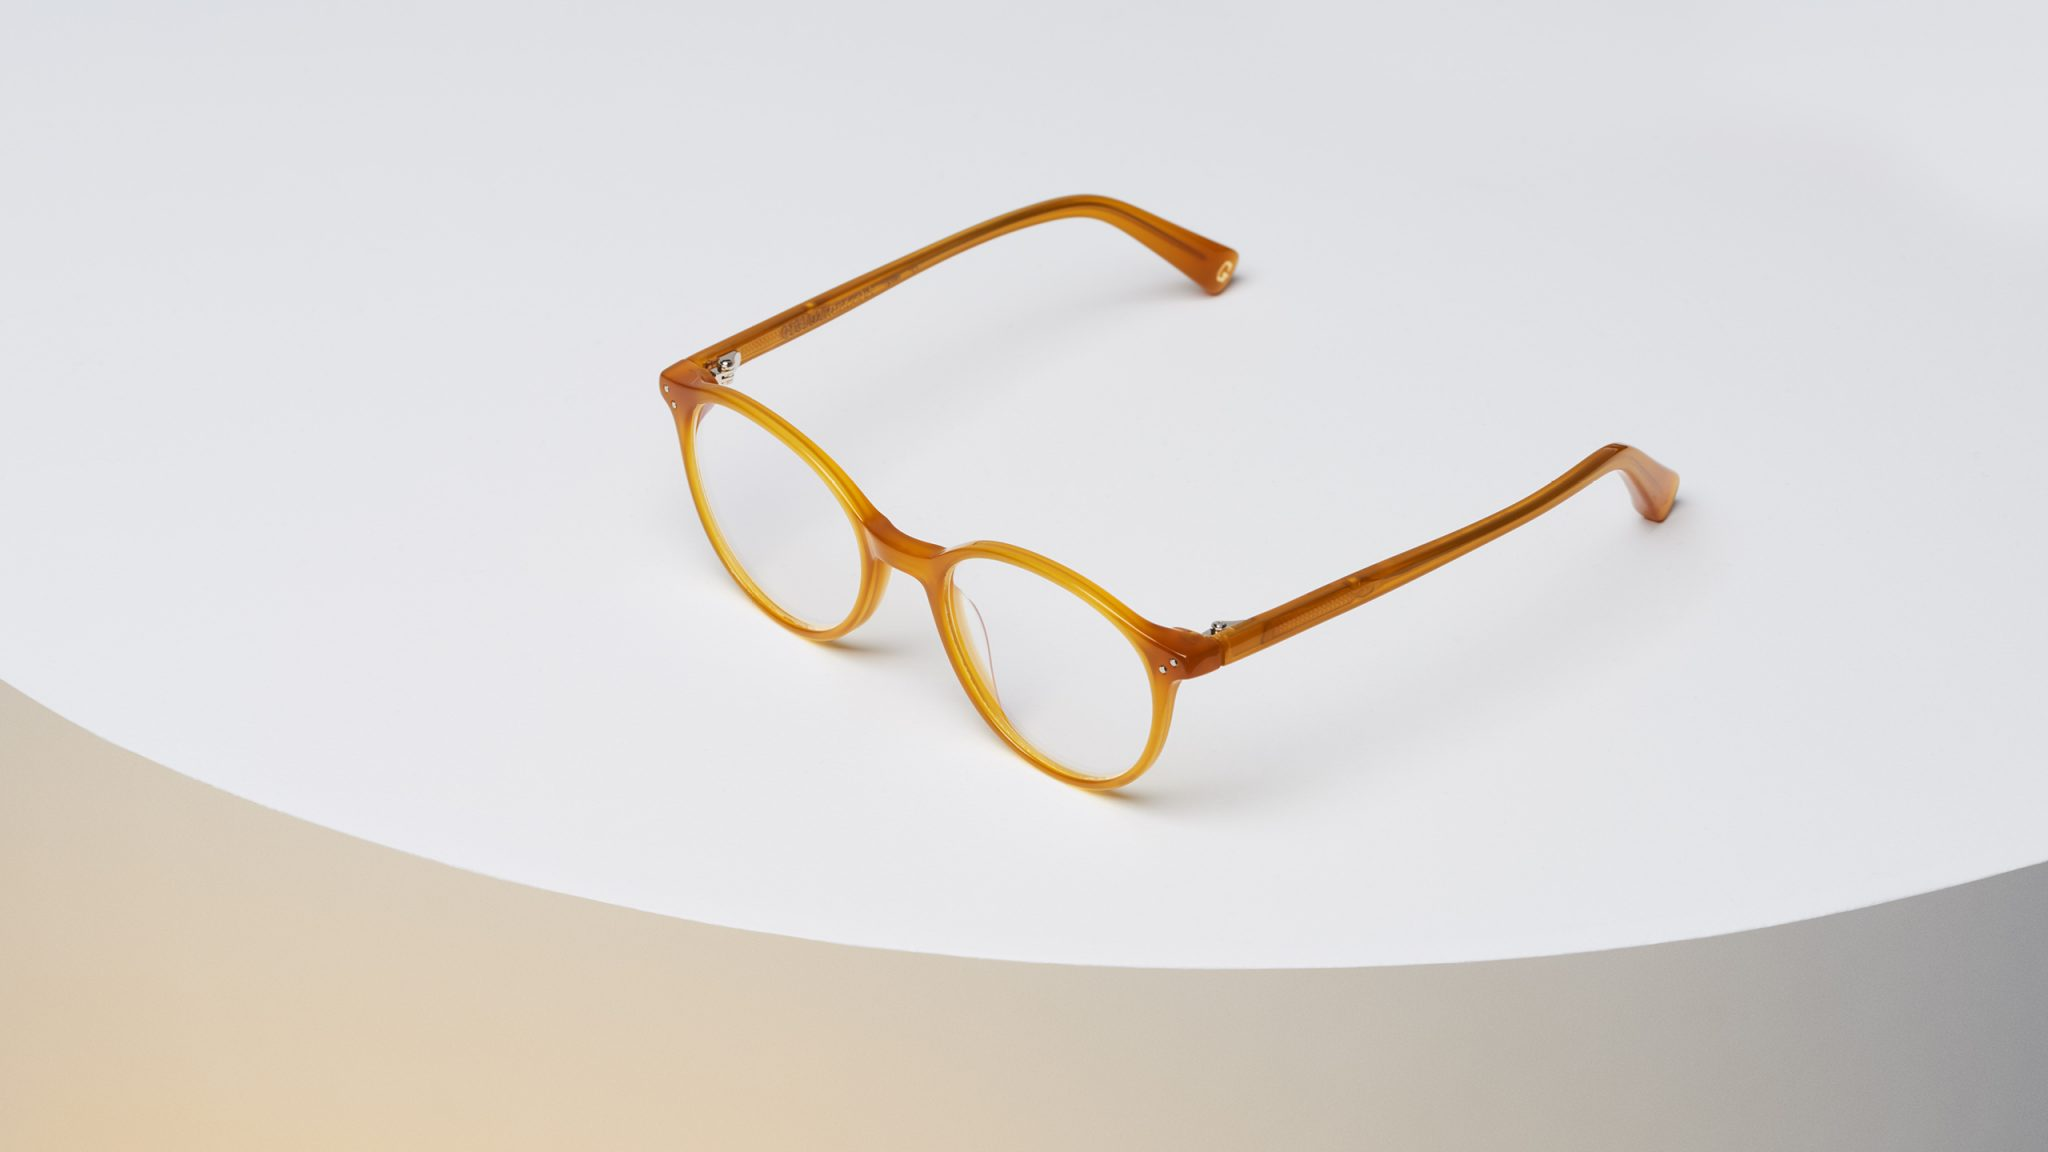 Keeping Traditions Alive with Gigi Barcelona's Latest Frames